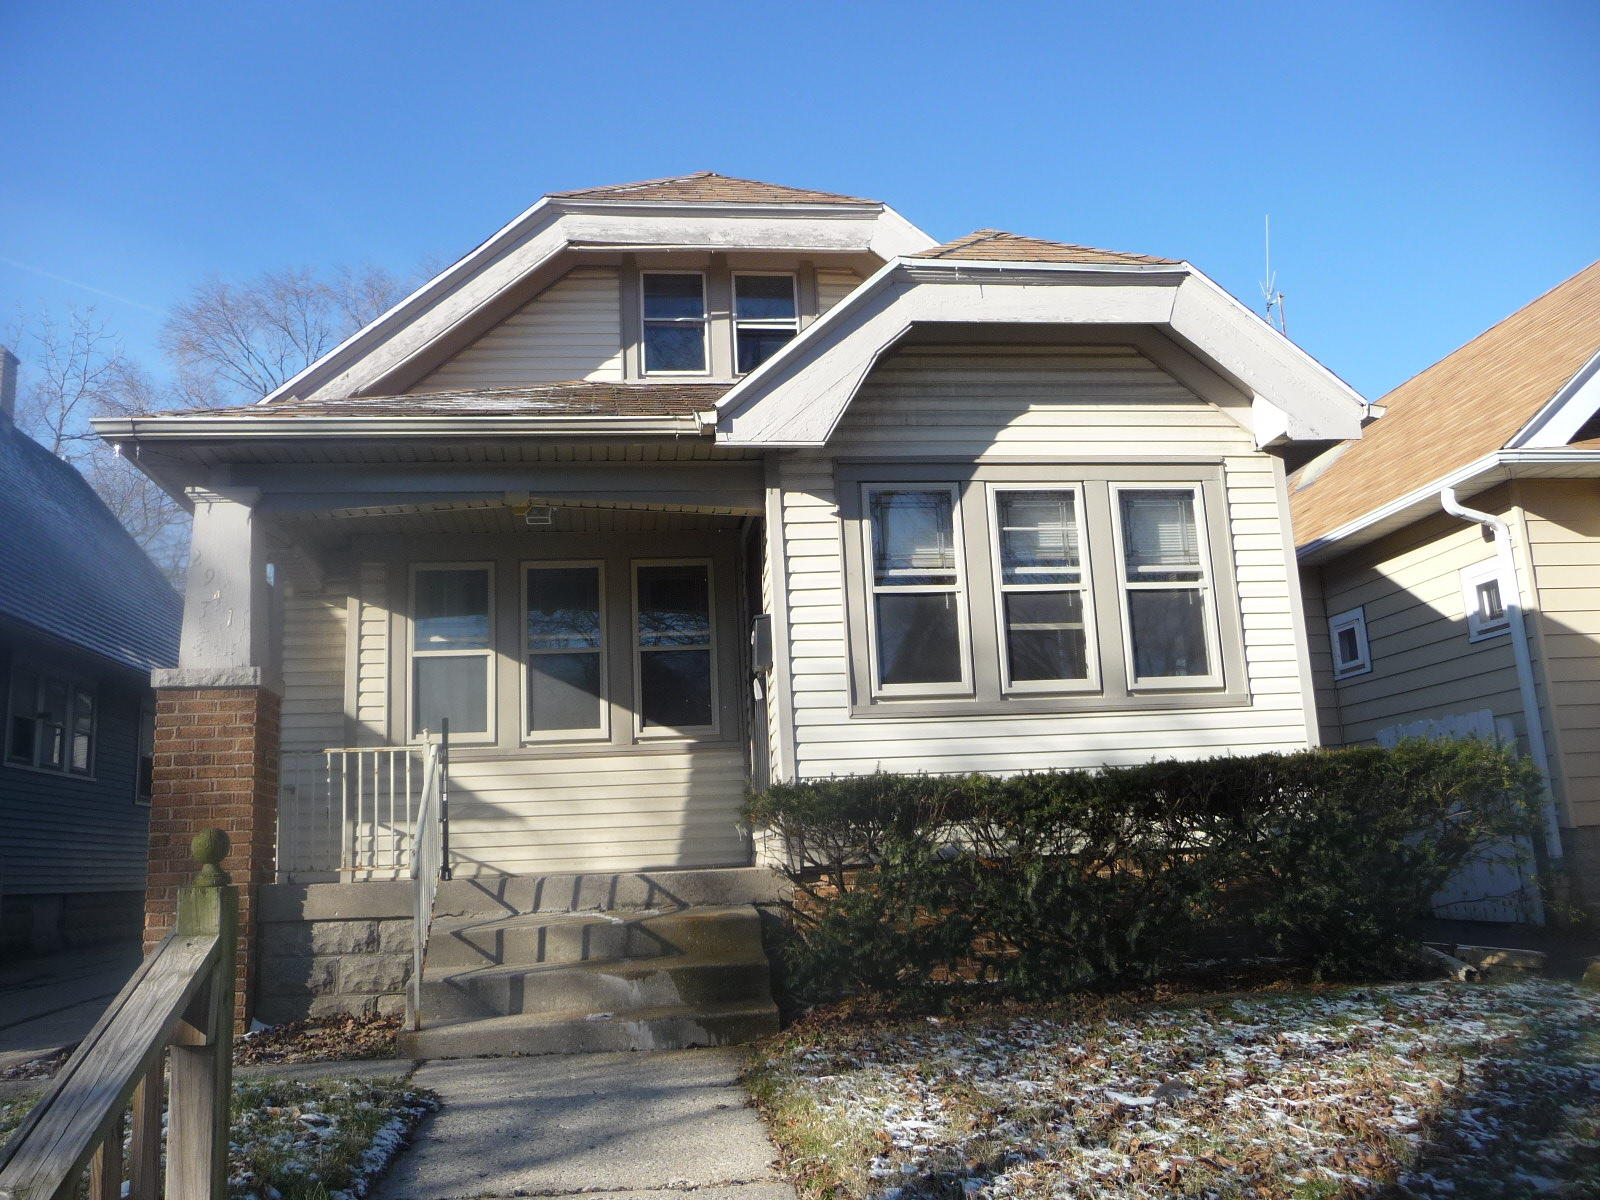 2941 59TH ST, Milwaukee, Wisconsin 53210, 3 Bedrooms Bedrooms, 8 Rooms Rooms,2 BathroomsBathrooms,Single-Family,For Sale,59TH ST,1616408